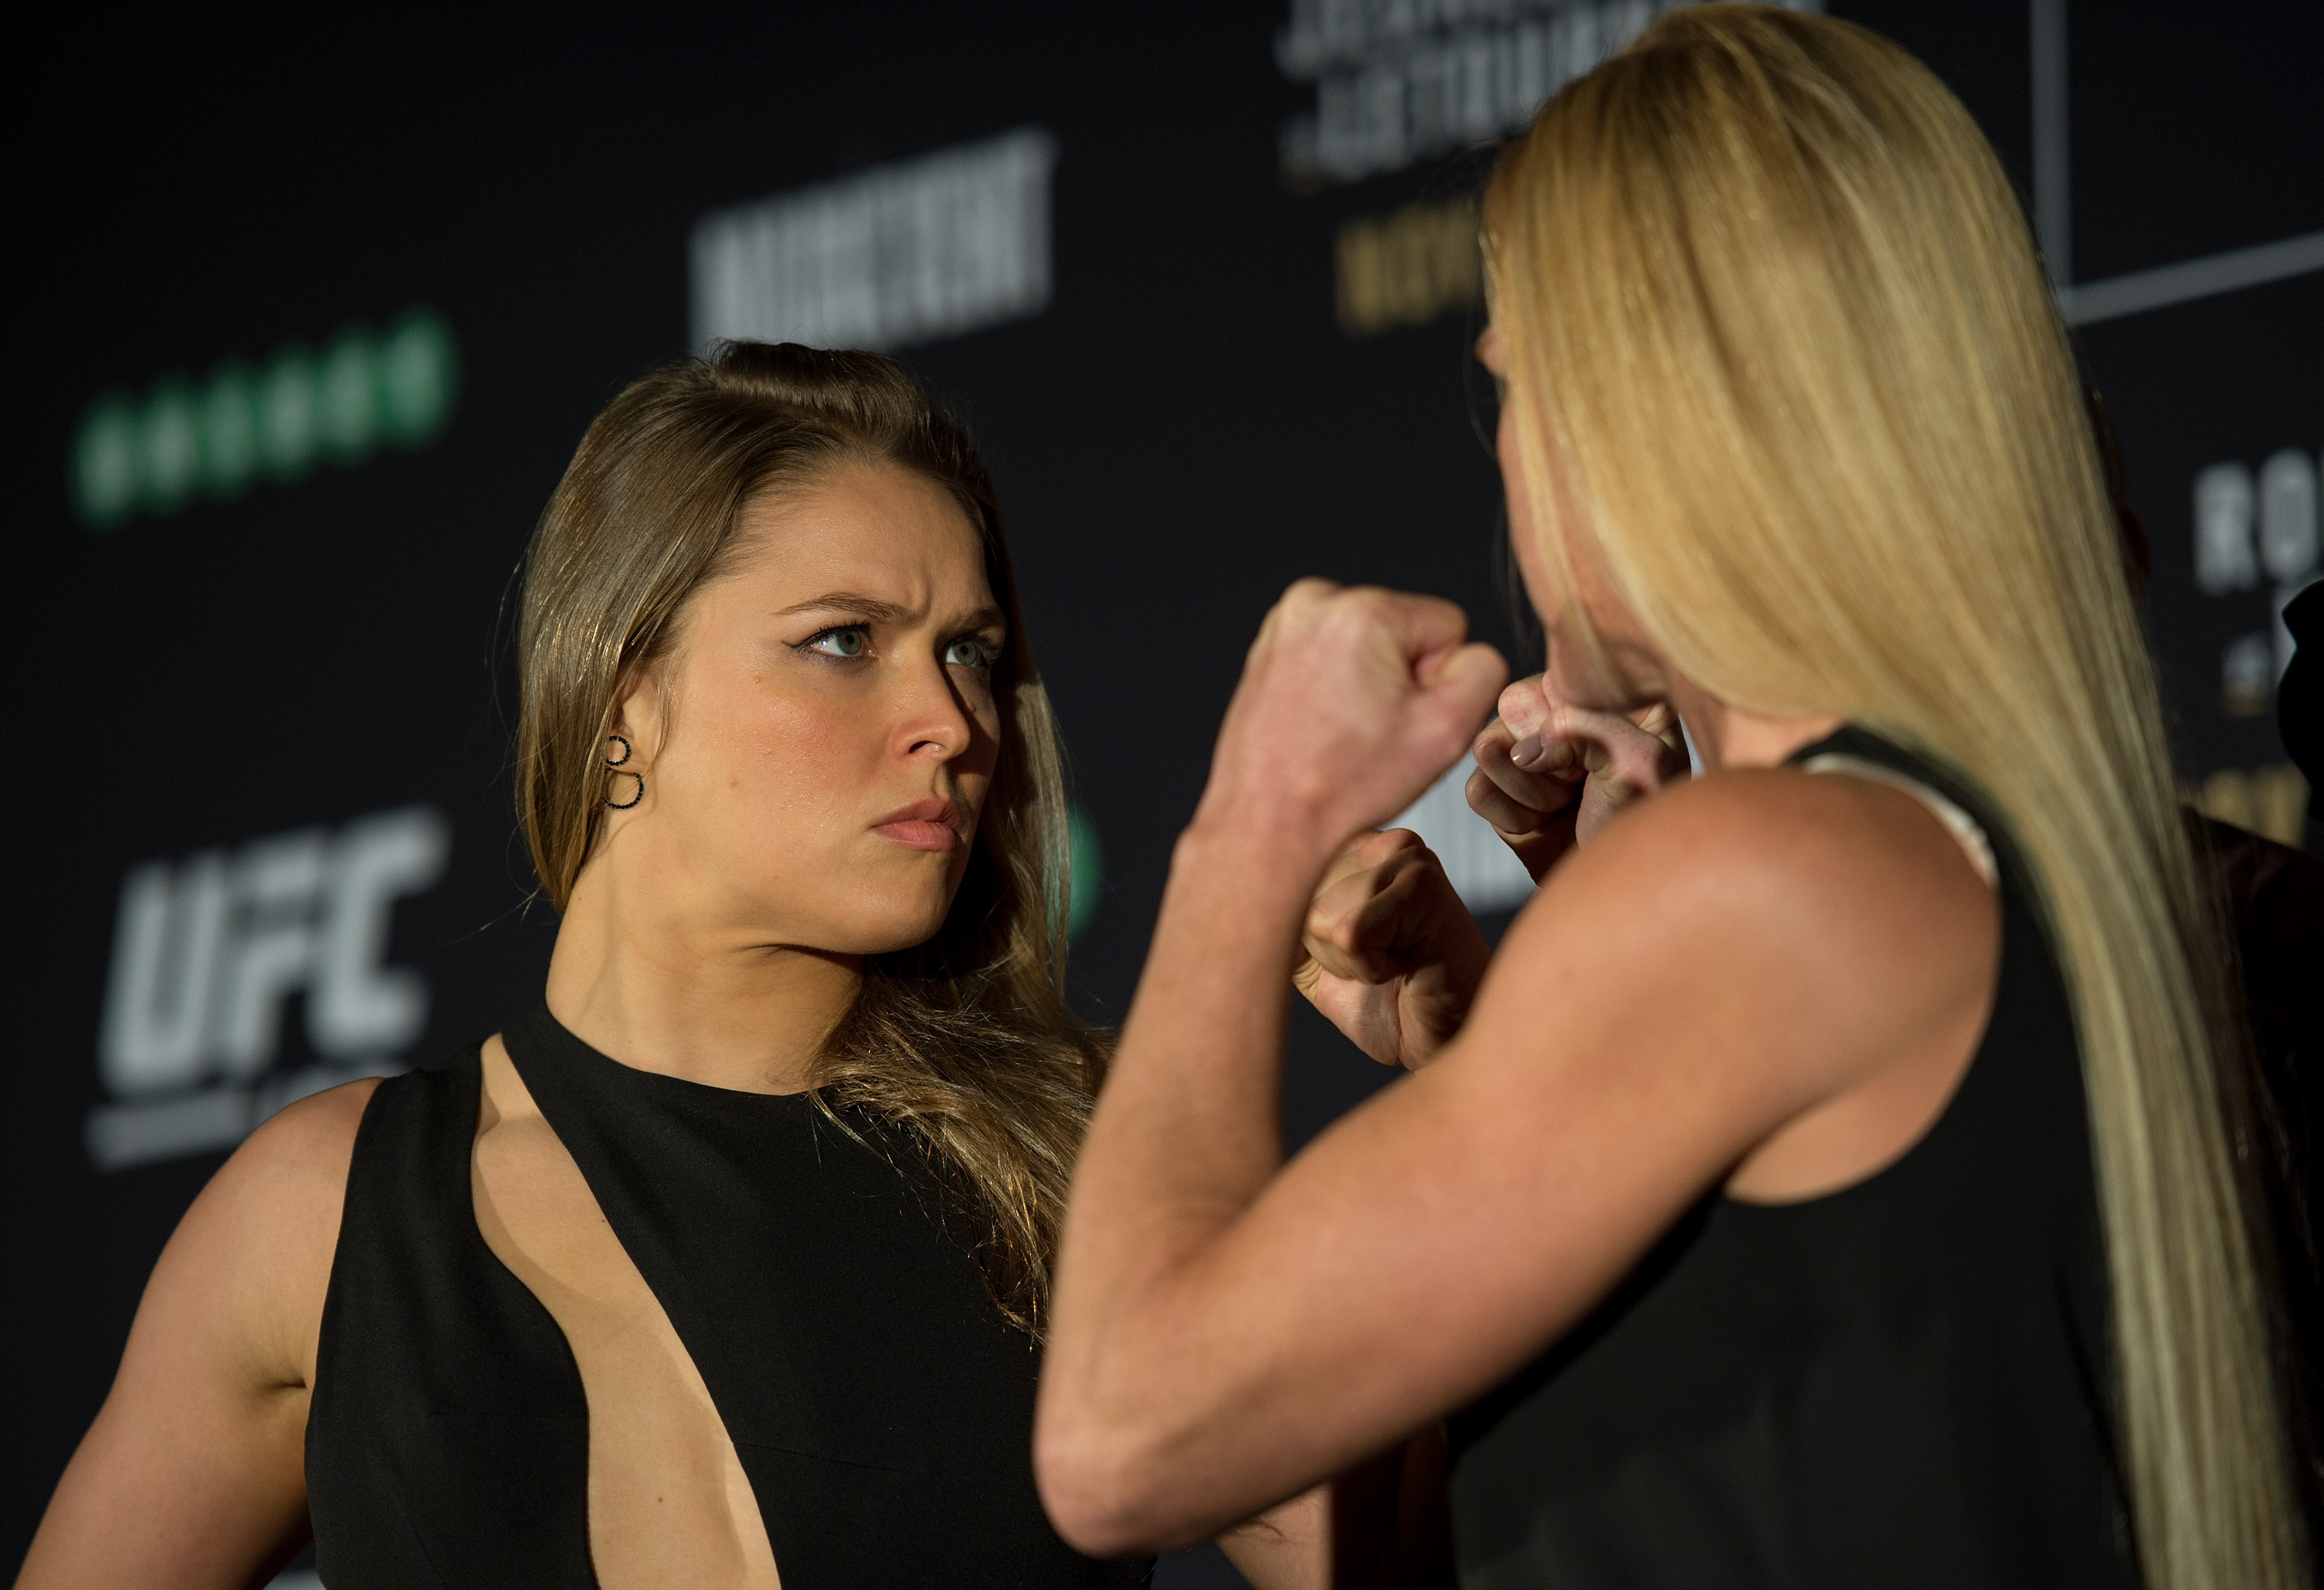 MELBOURNE, AUSTRALIA - NOVEMBER 13:  (L-R) UFC women's bantamweight champion Ronda Rousey of the United States and Holly Holm of the United States face off during the UFC 193 Ultimate Media Day festivities at Etihad Stadium on November 13, 2015 in Melbourne, Australia. (Photo by Brandon Magnus/Zuffa LLC)